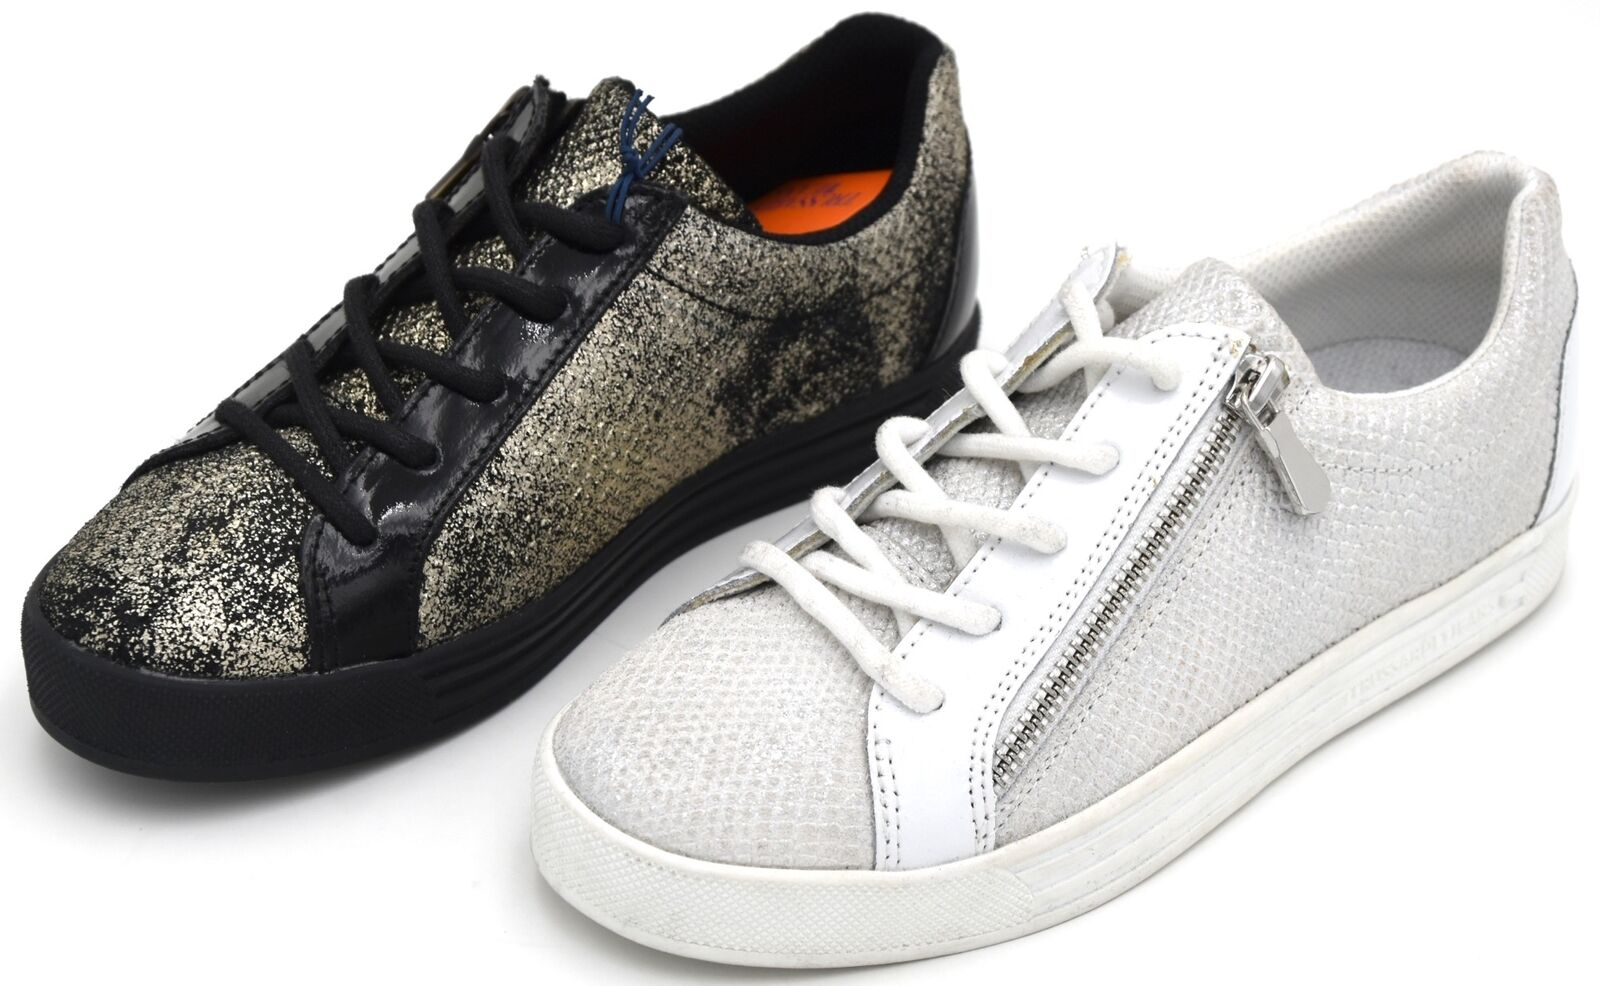 TRUSSARDI JEANS WOMAN SNEAKER CASUAL FREE TIME REPTILE STAMP CODE 79A00237